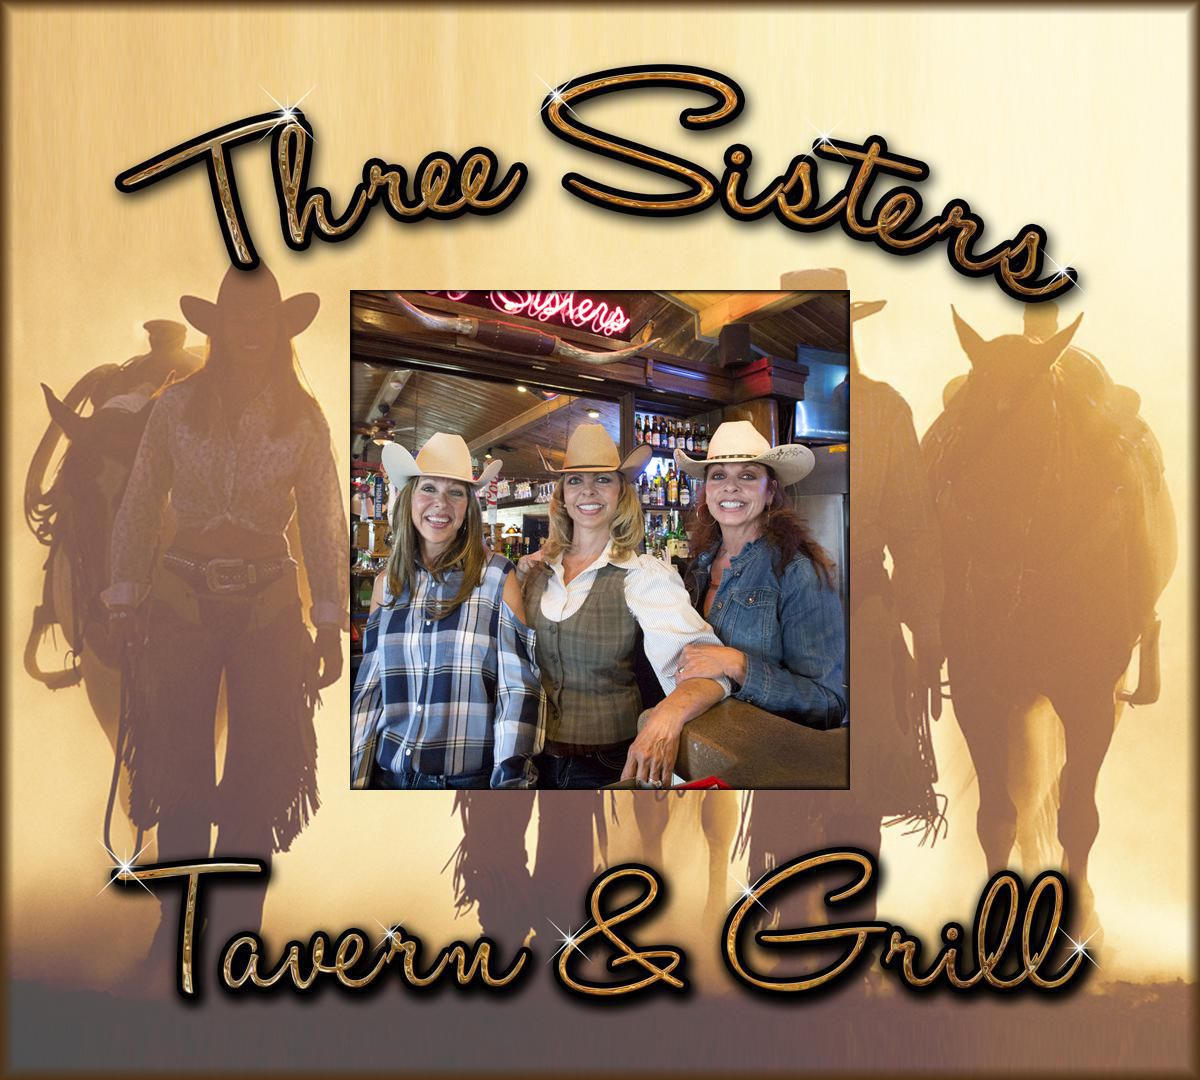 Three Sisters Tavern and Grill